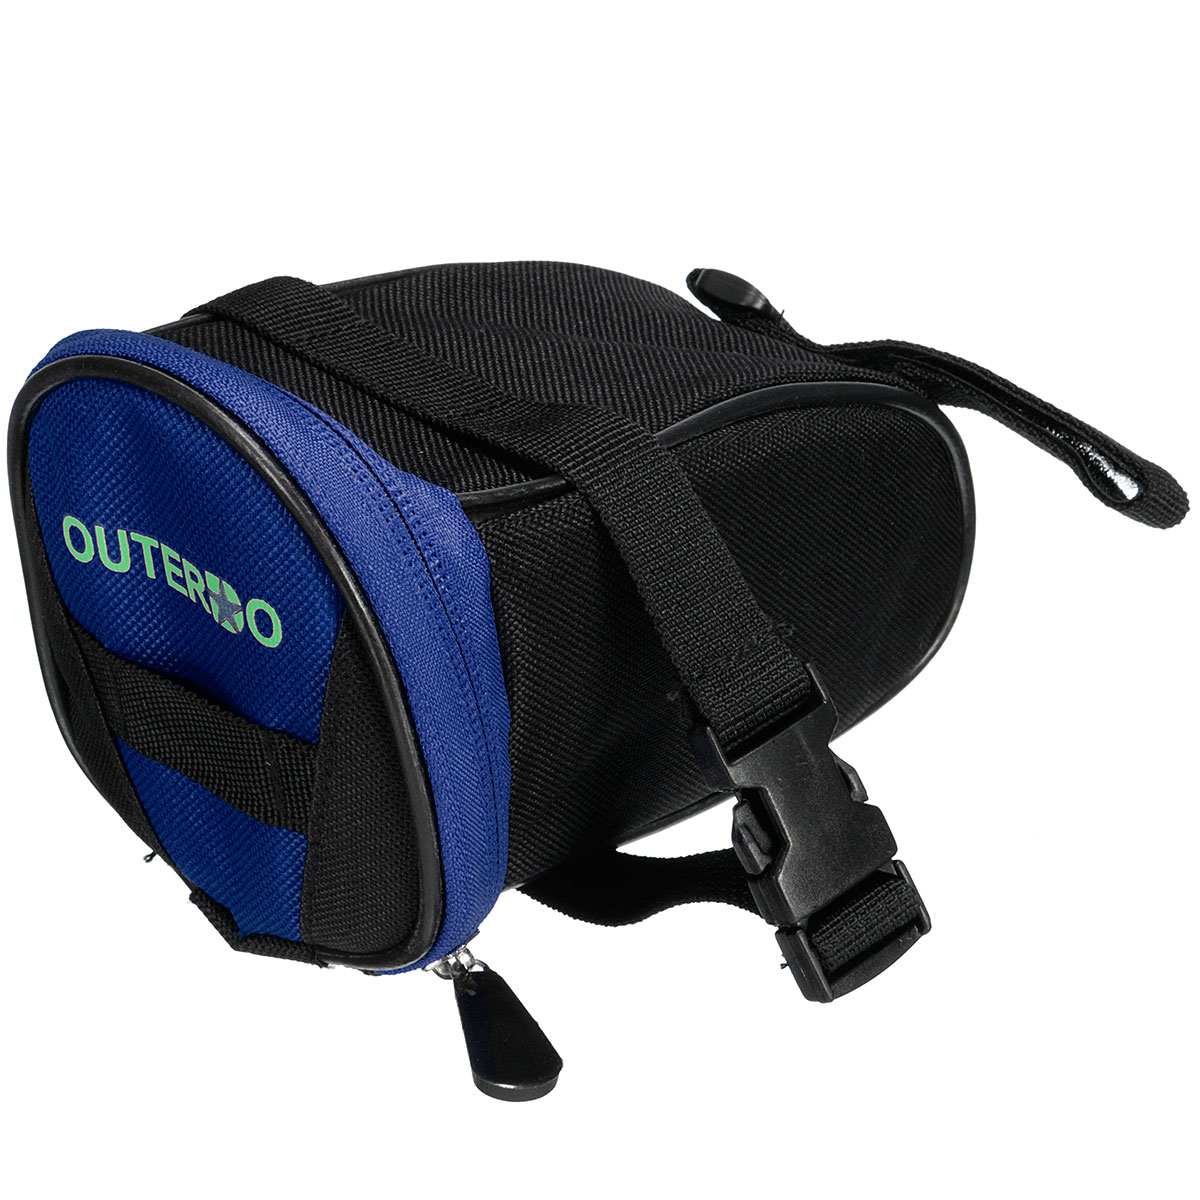 OUTERDO New Roswheel Outdoor Cycling Bike Bicycle Rear Seat Saddle Bag Under Seat Packs Tail Pouch